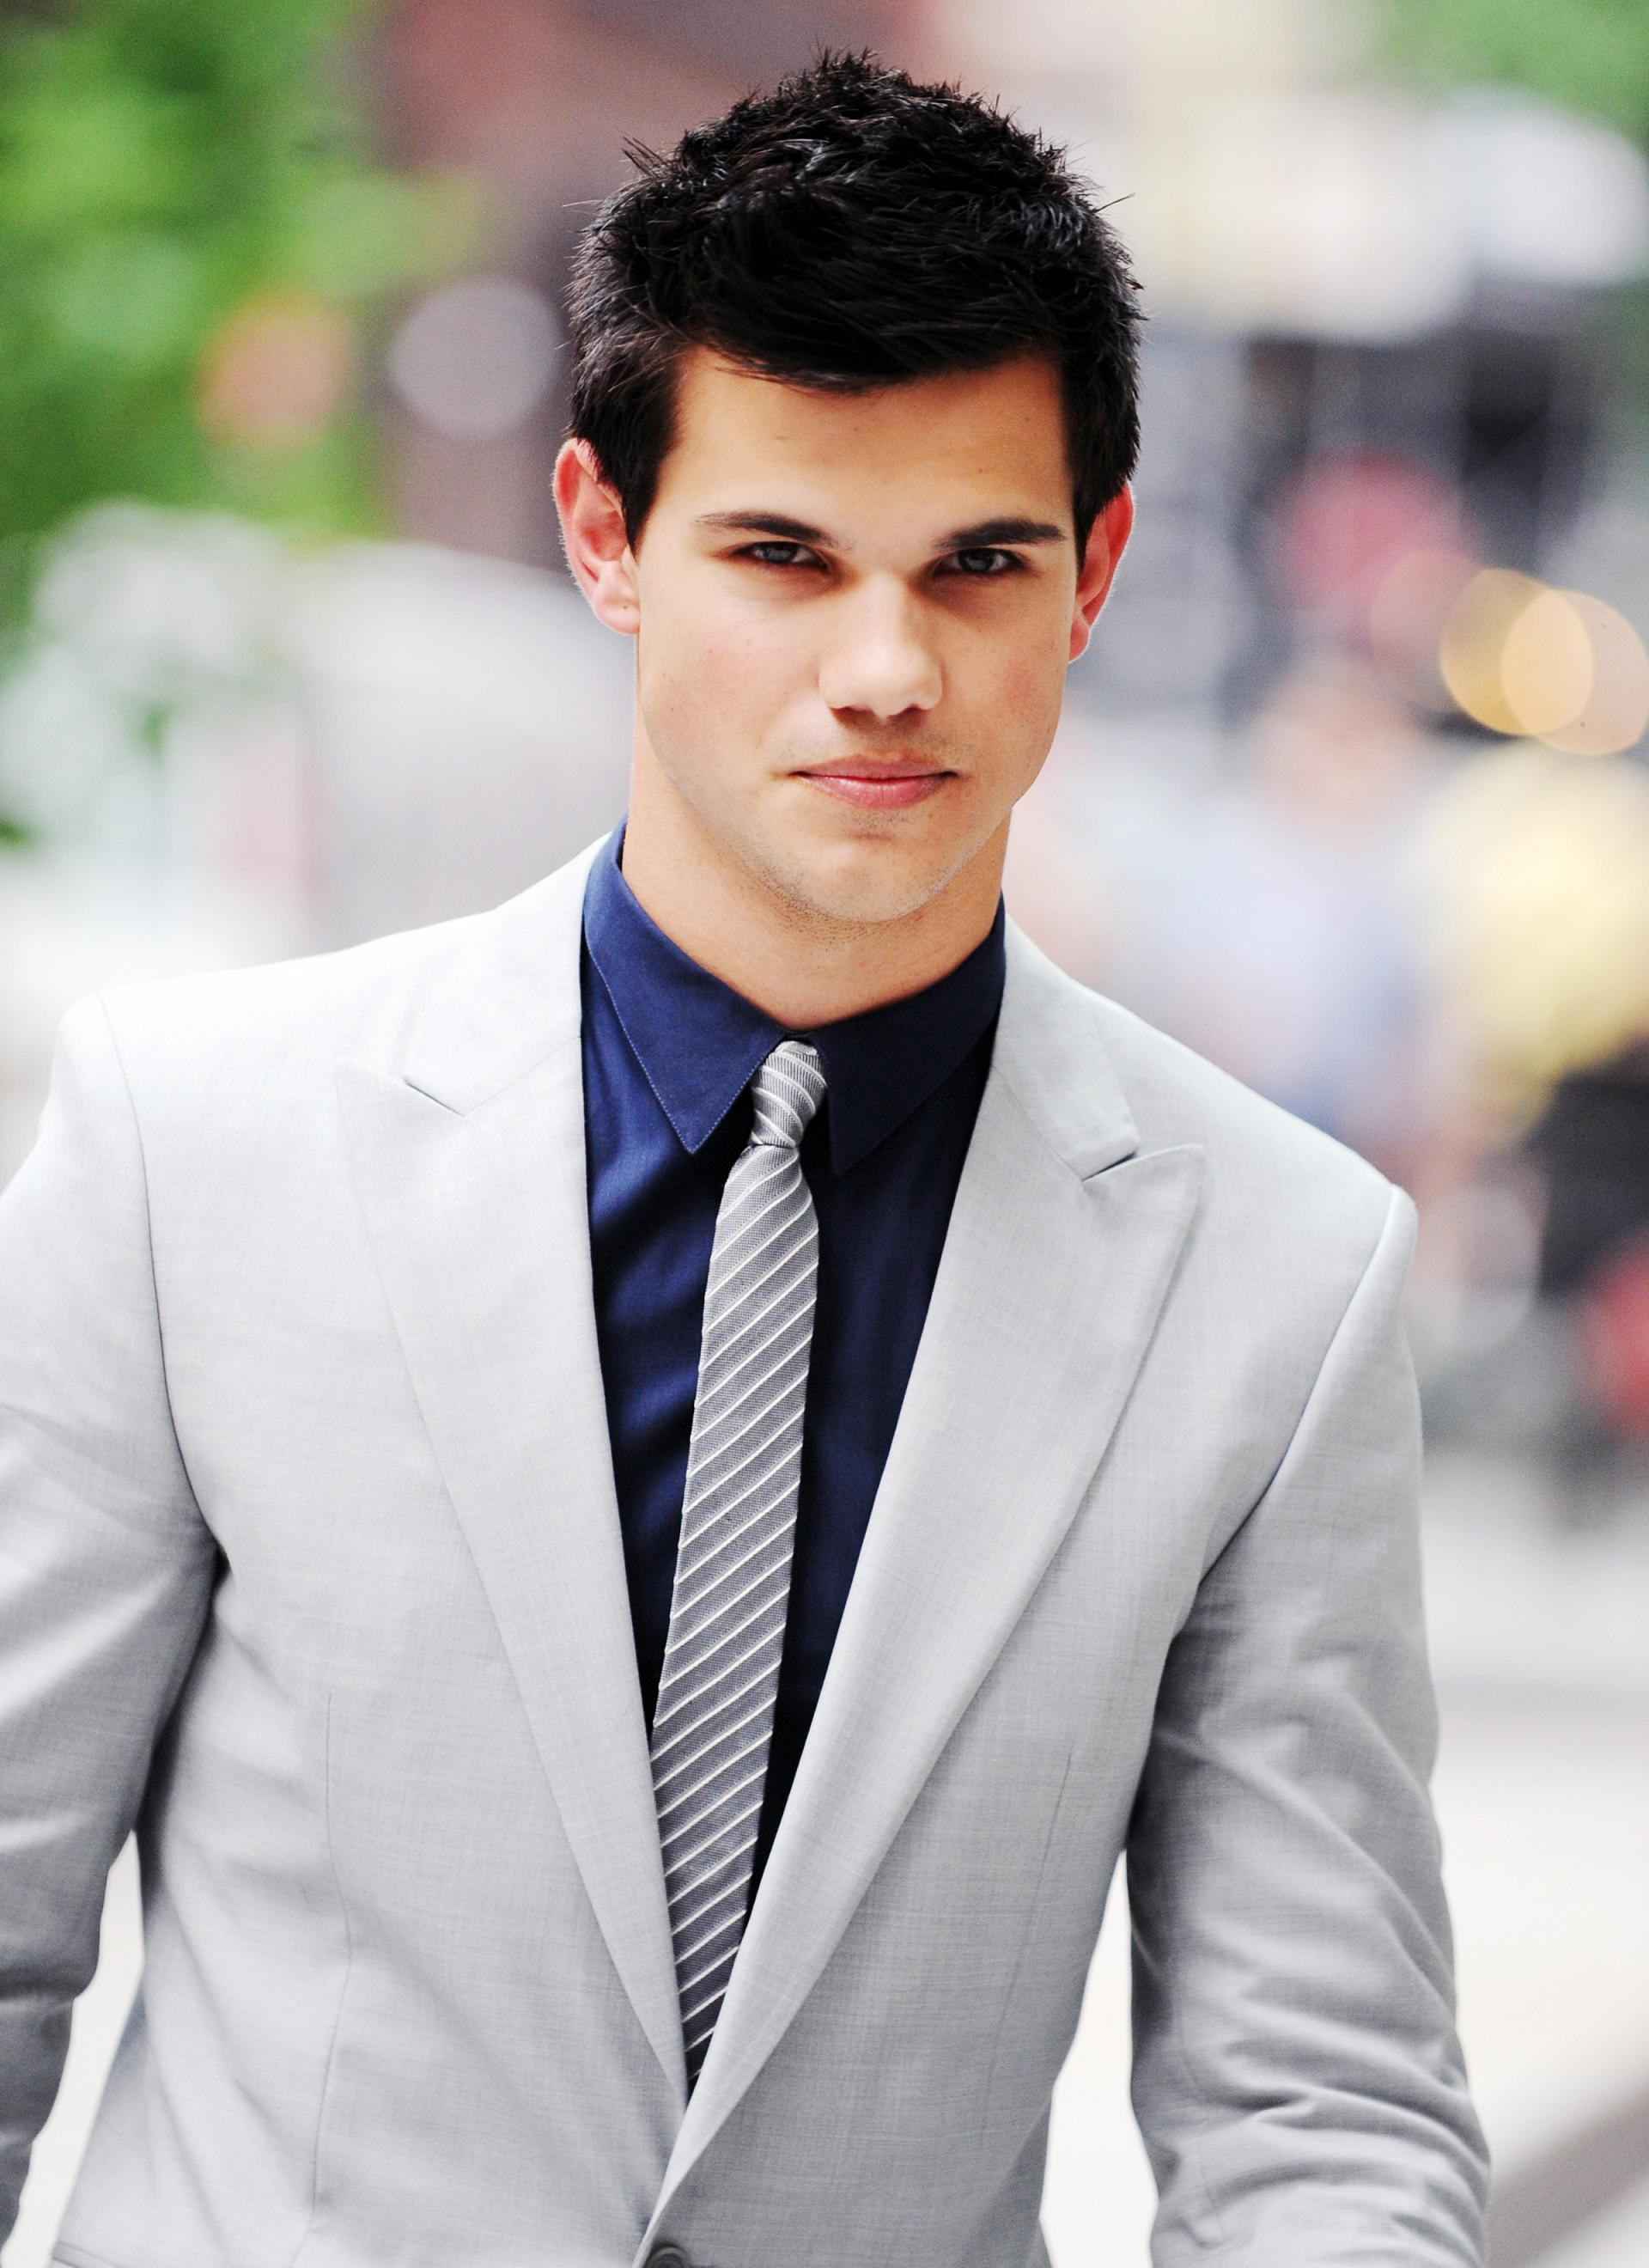 http://www.theplace.ru/archive/taylor_lautner/img/FP_5287849_Eclipse_A.jpg